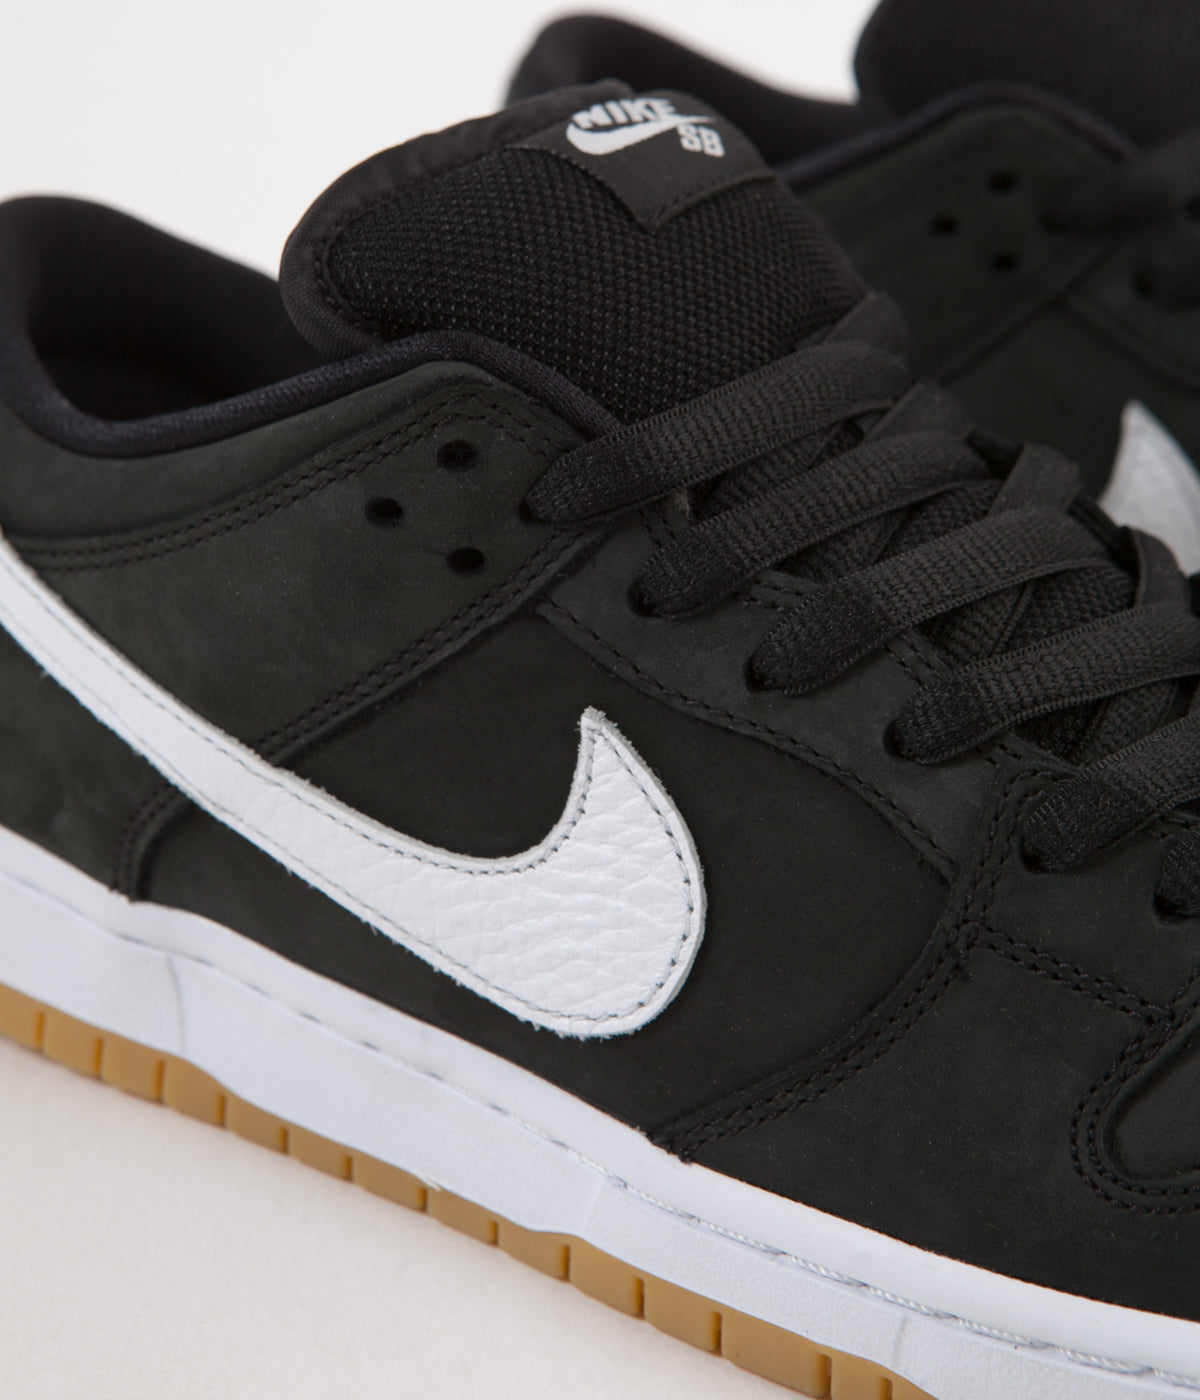 new style 2be08 b0a7e ... Nike SB Orange Label Dunk Low Pro Shoes - Black  White - Black ...